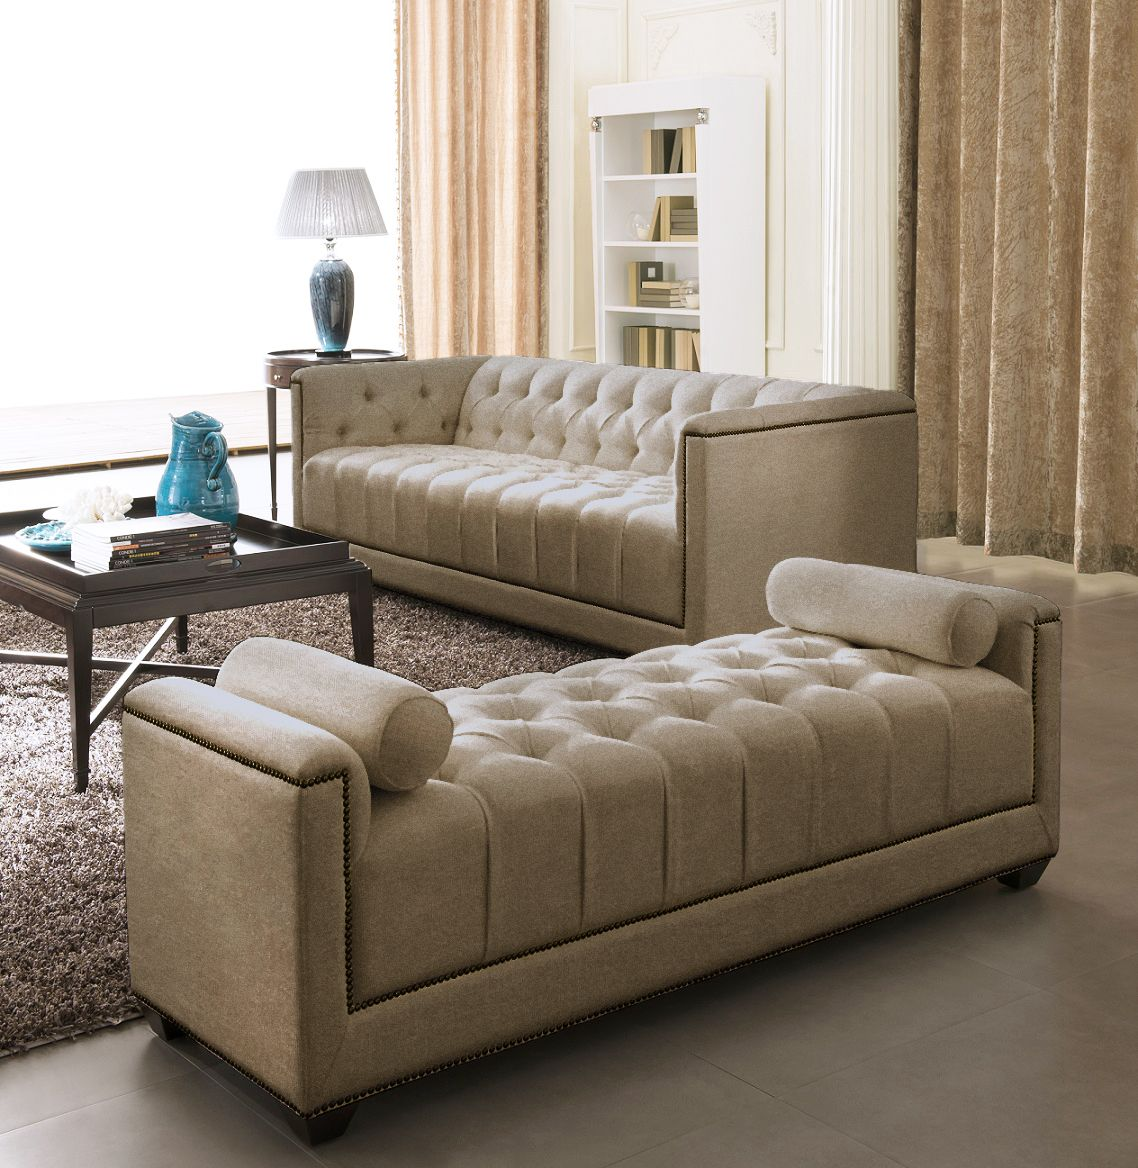 Best Modern Sofa Set Designs For Living Room Living Room Sofa 400 x 300